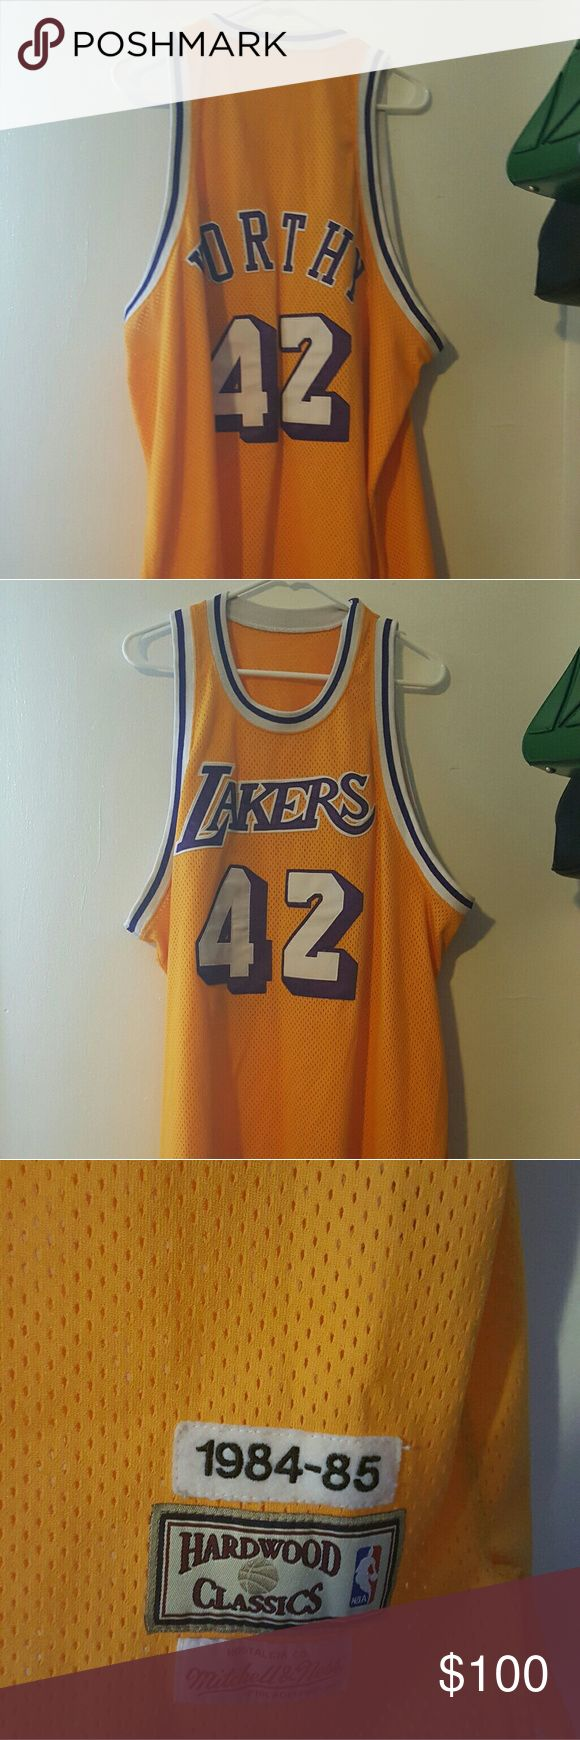 🏀🏀🏀Authentic James Worthy🏀🏀🏀 ⚠️⚠️⚠️For the Fans! As is. No spots or knicks⚠️⚠️⚠️ Mitchell & Ness Shirts